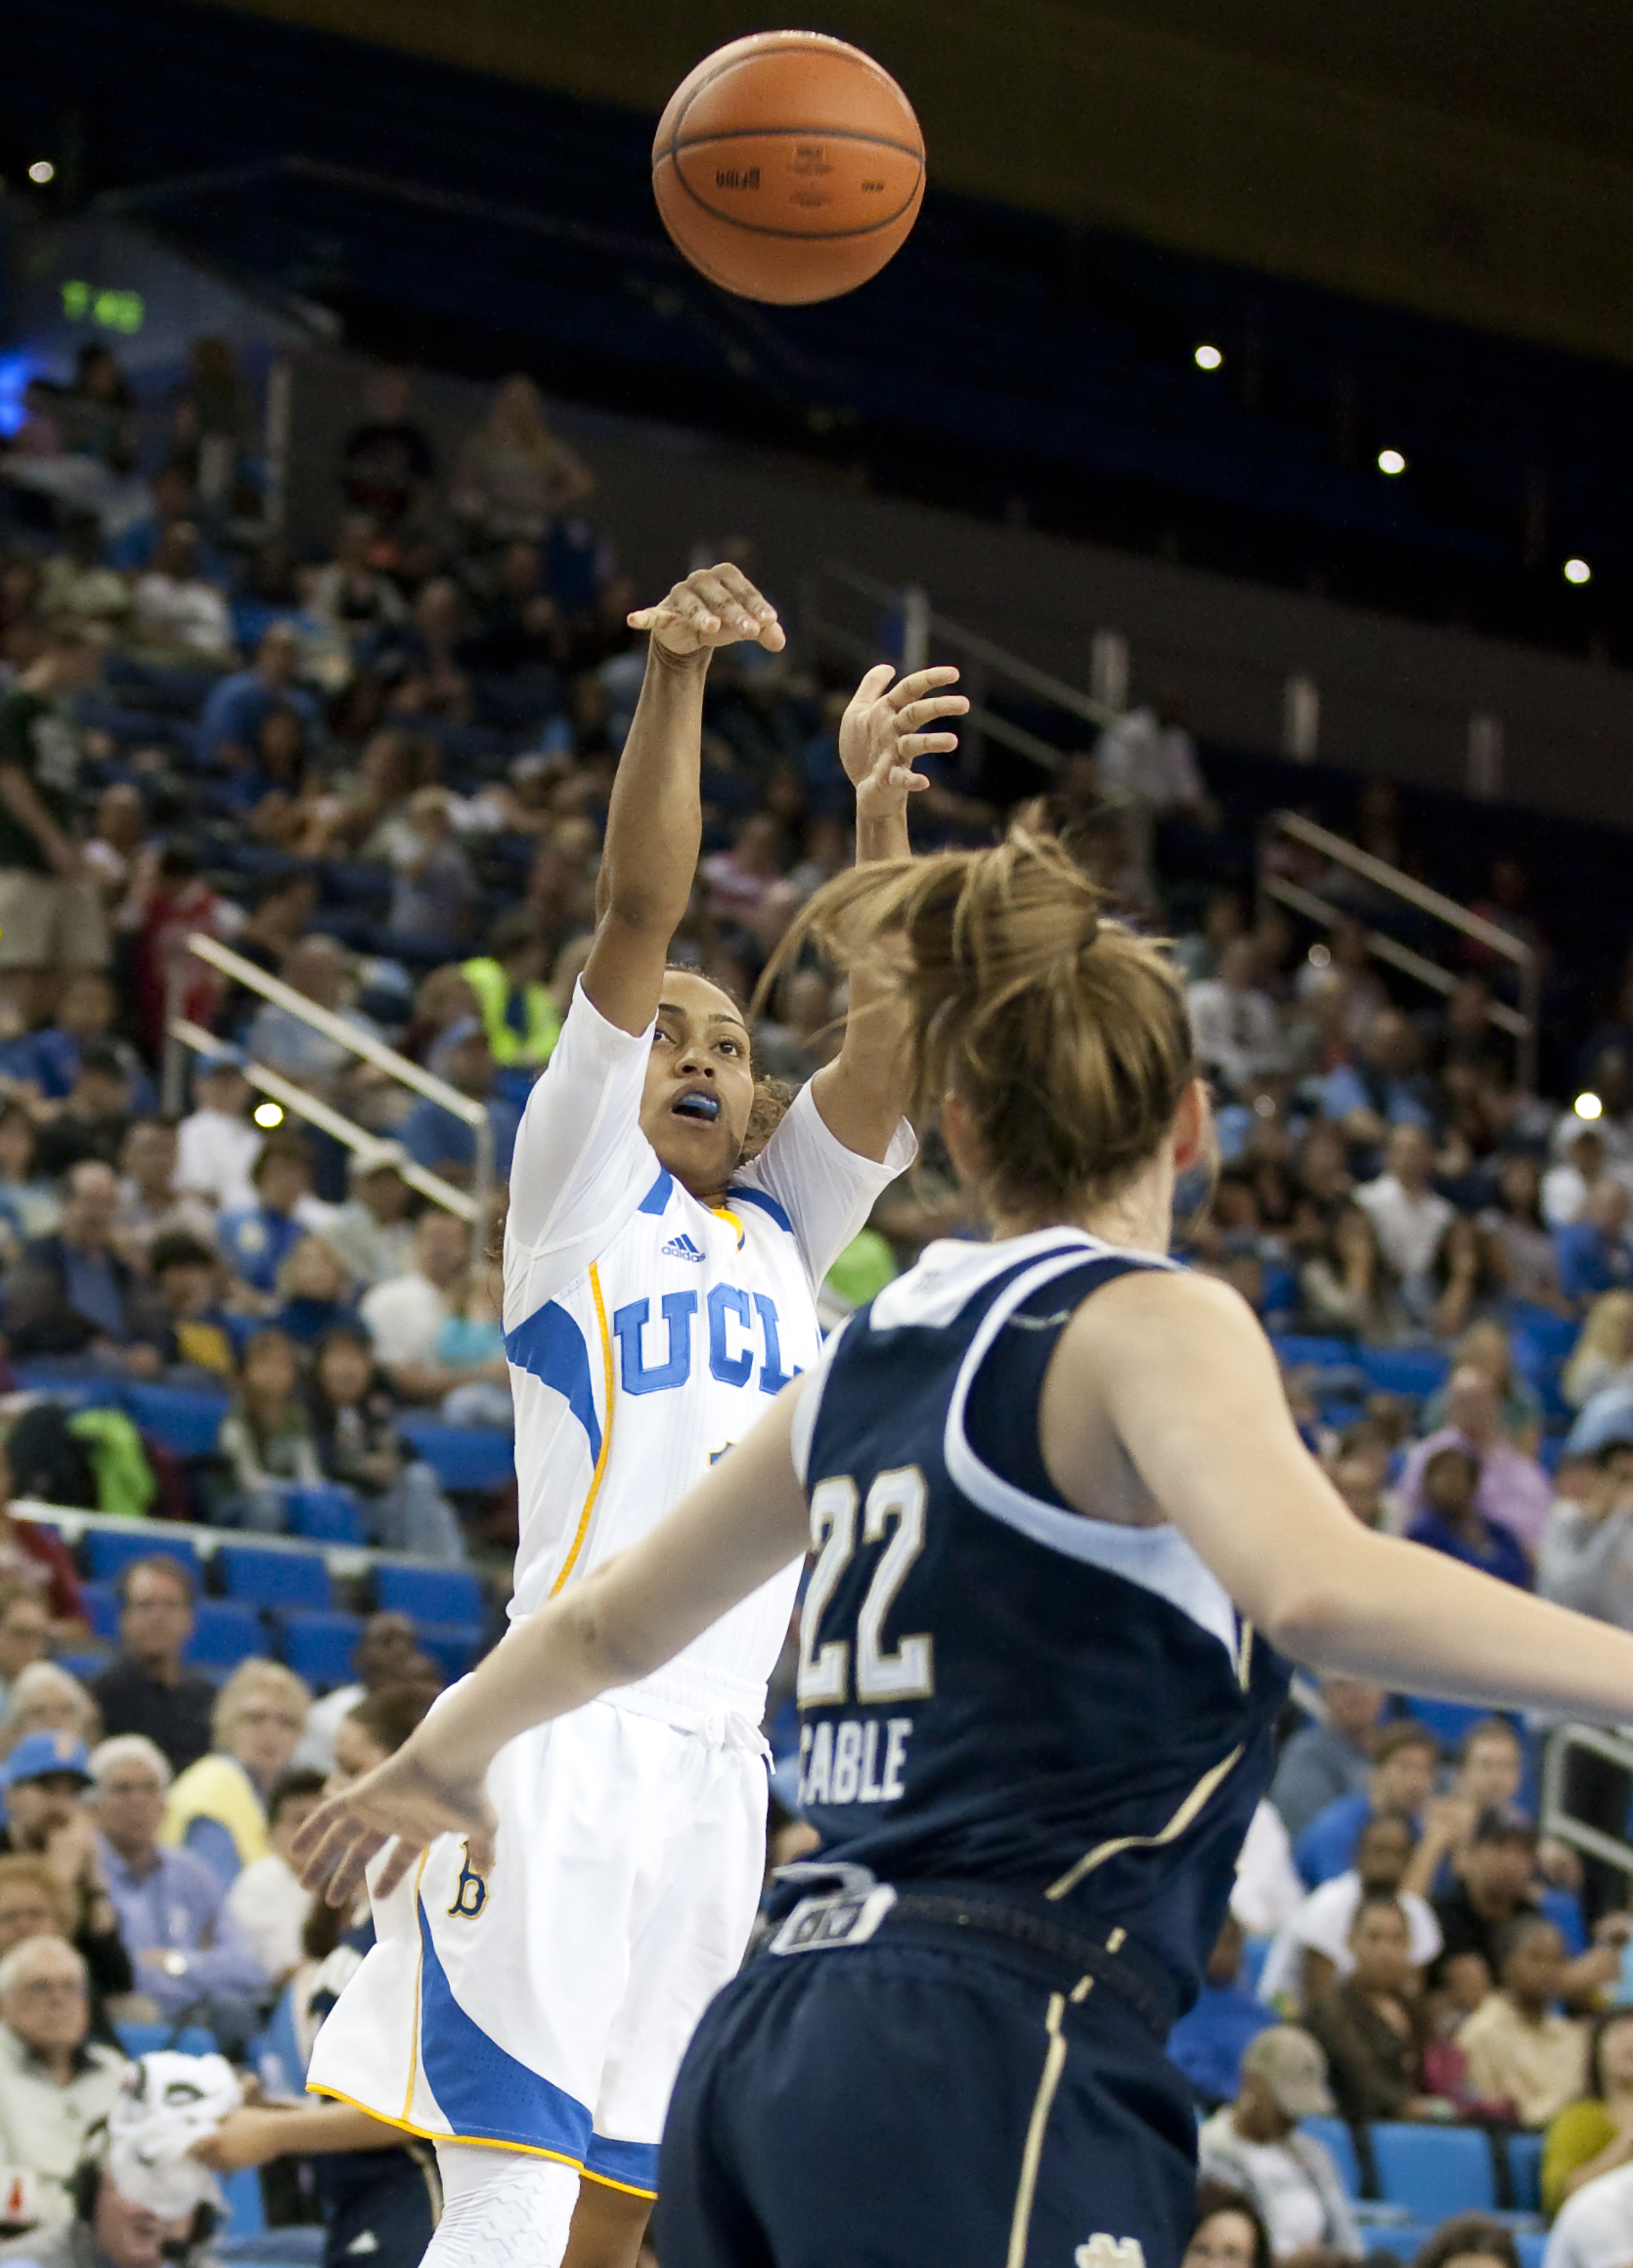 Senior guard Mariah Williams and the UCLA women's basketball team took a twenty-point win this weekend at Reliant Stadium in Houston against Texas. The team has beaten two ranked opponents, No. 12 Texas and then-No. 11 Oklahoma, on the road.